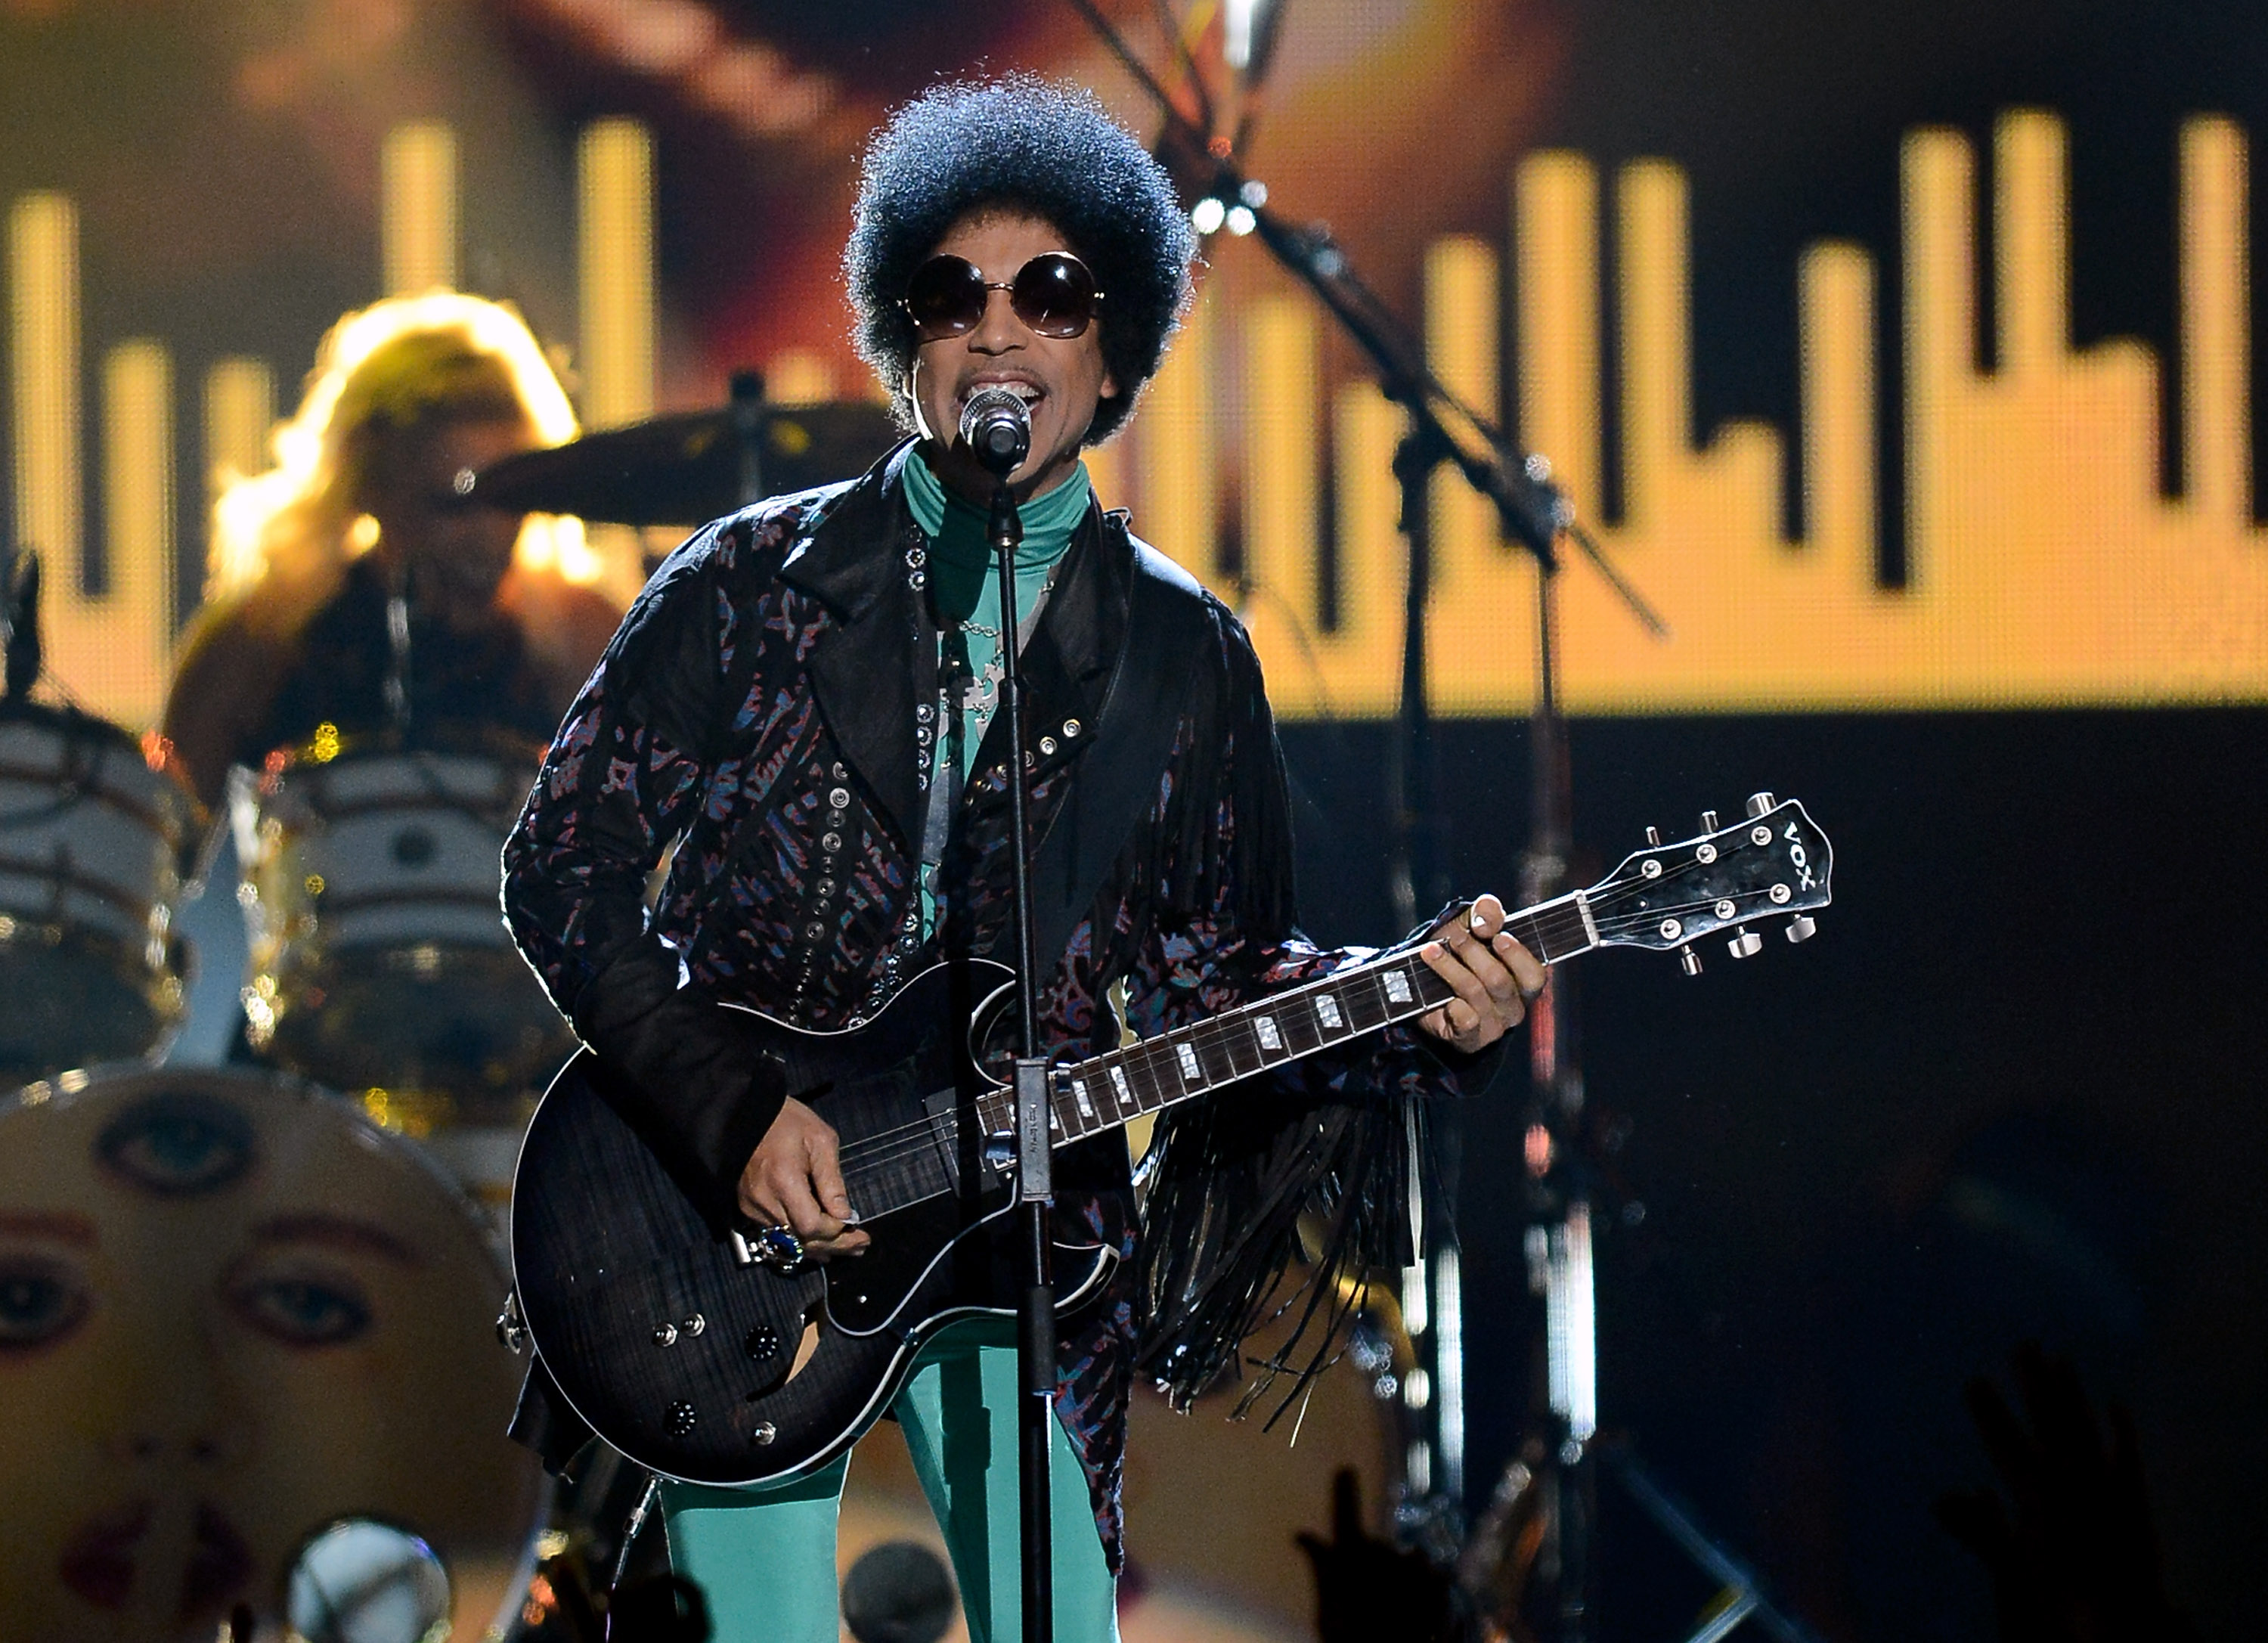 Prince performs in Las Vegas, on May 19, 2013.